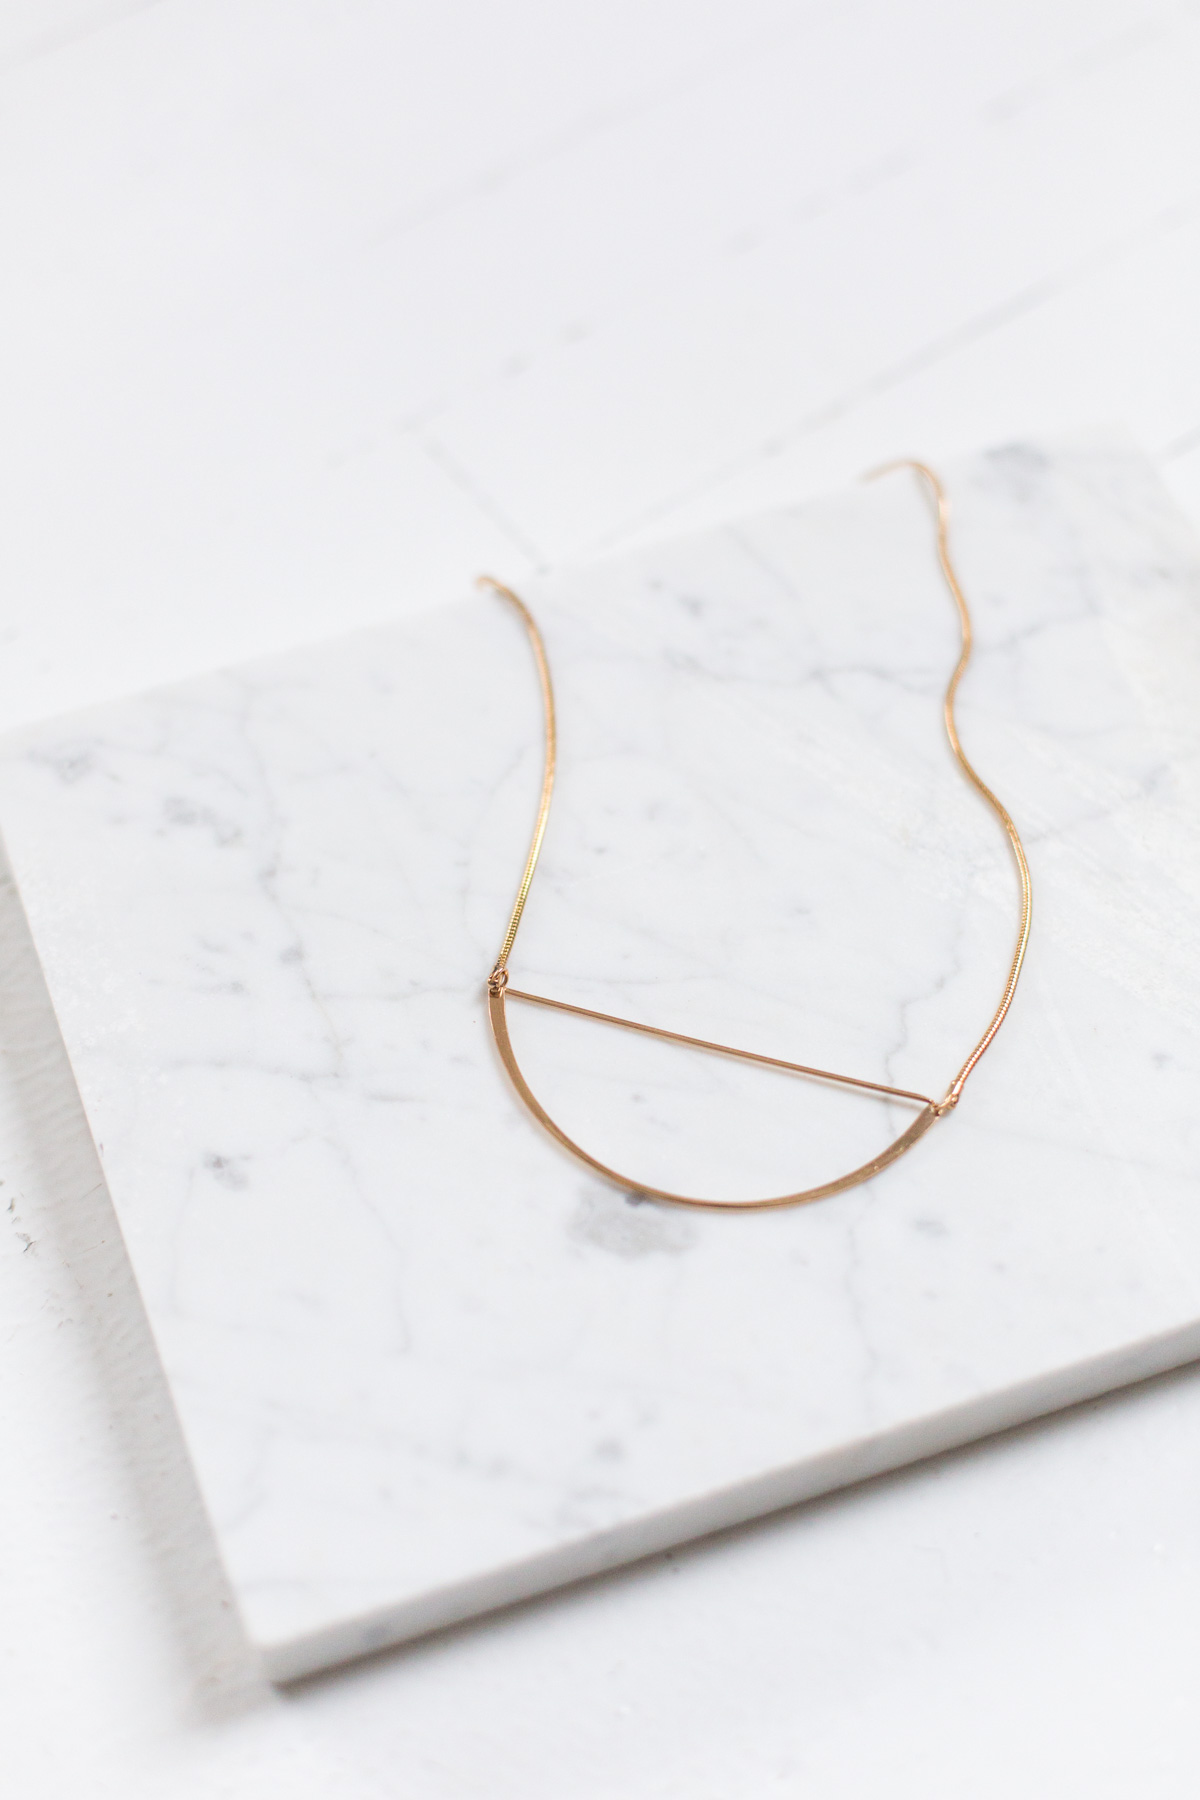 Arte Haus Collectif Curve Arc Necklace